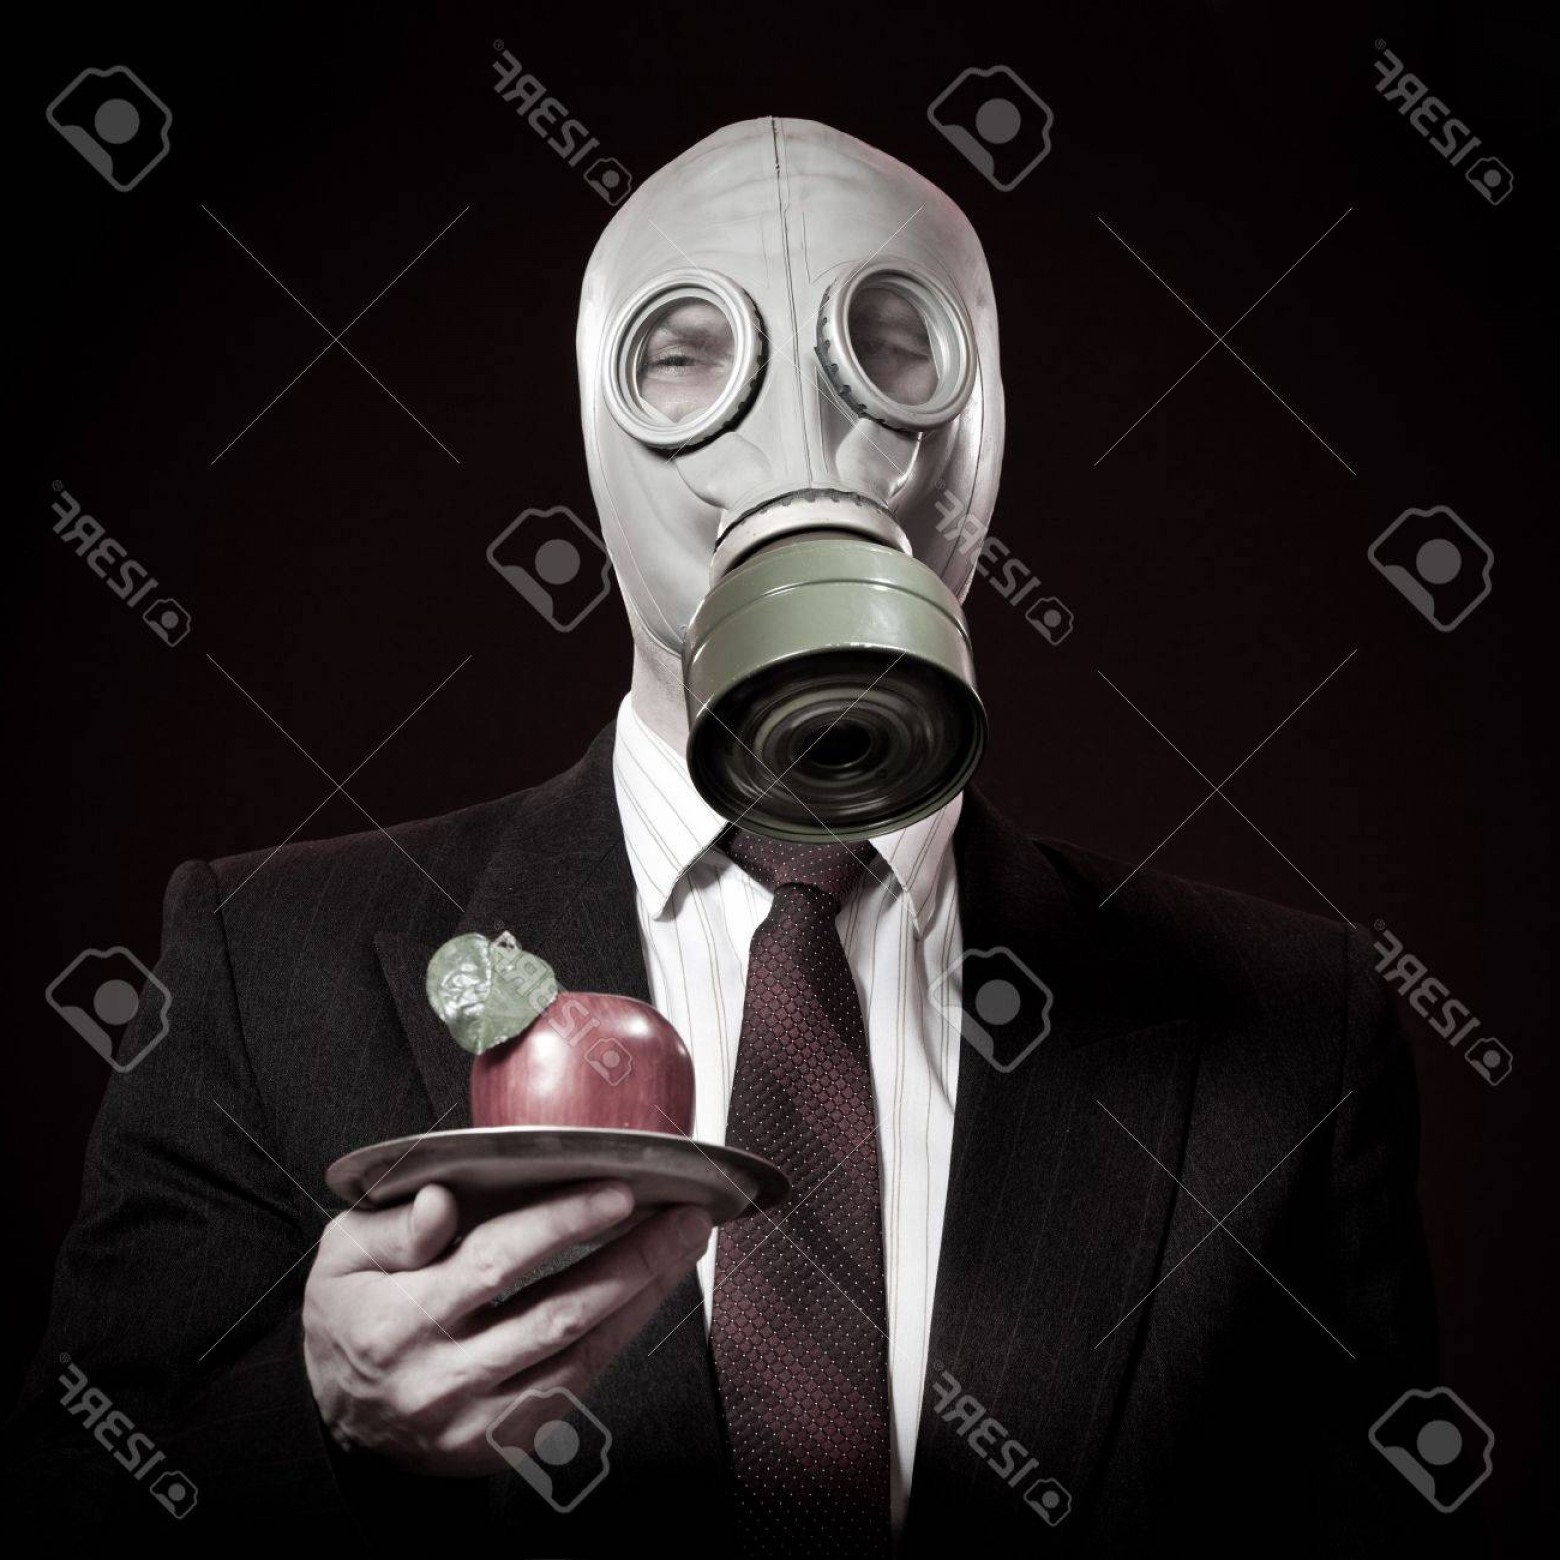 Gas Mask Suit And Tie Vector: Photoperson In A Gas Mask With An Apple In A Hand